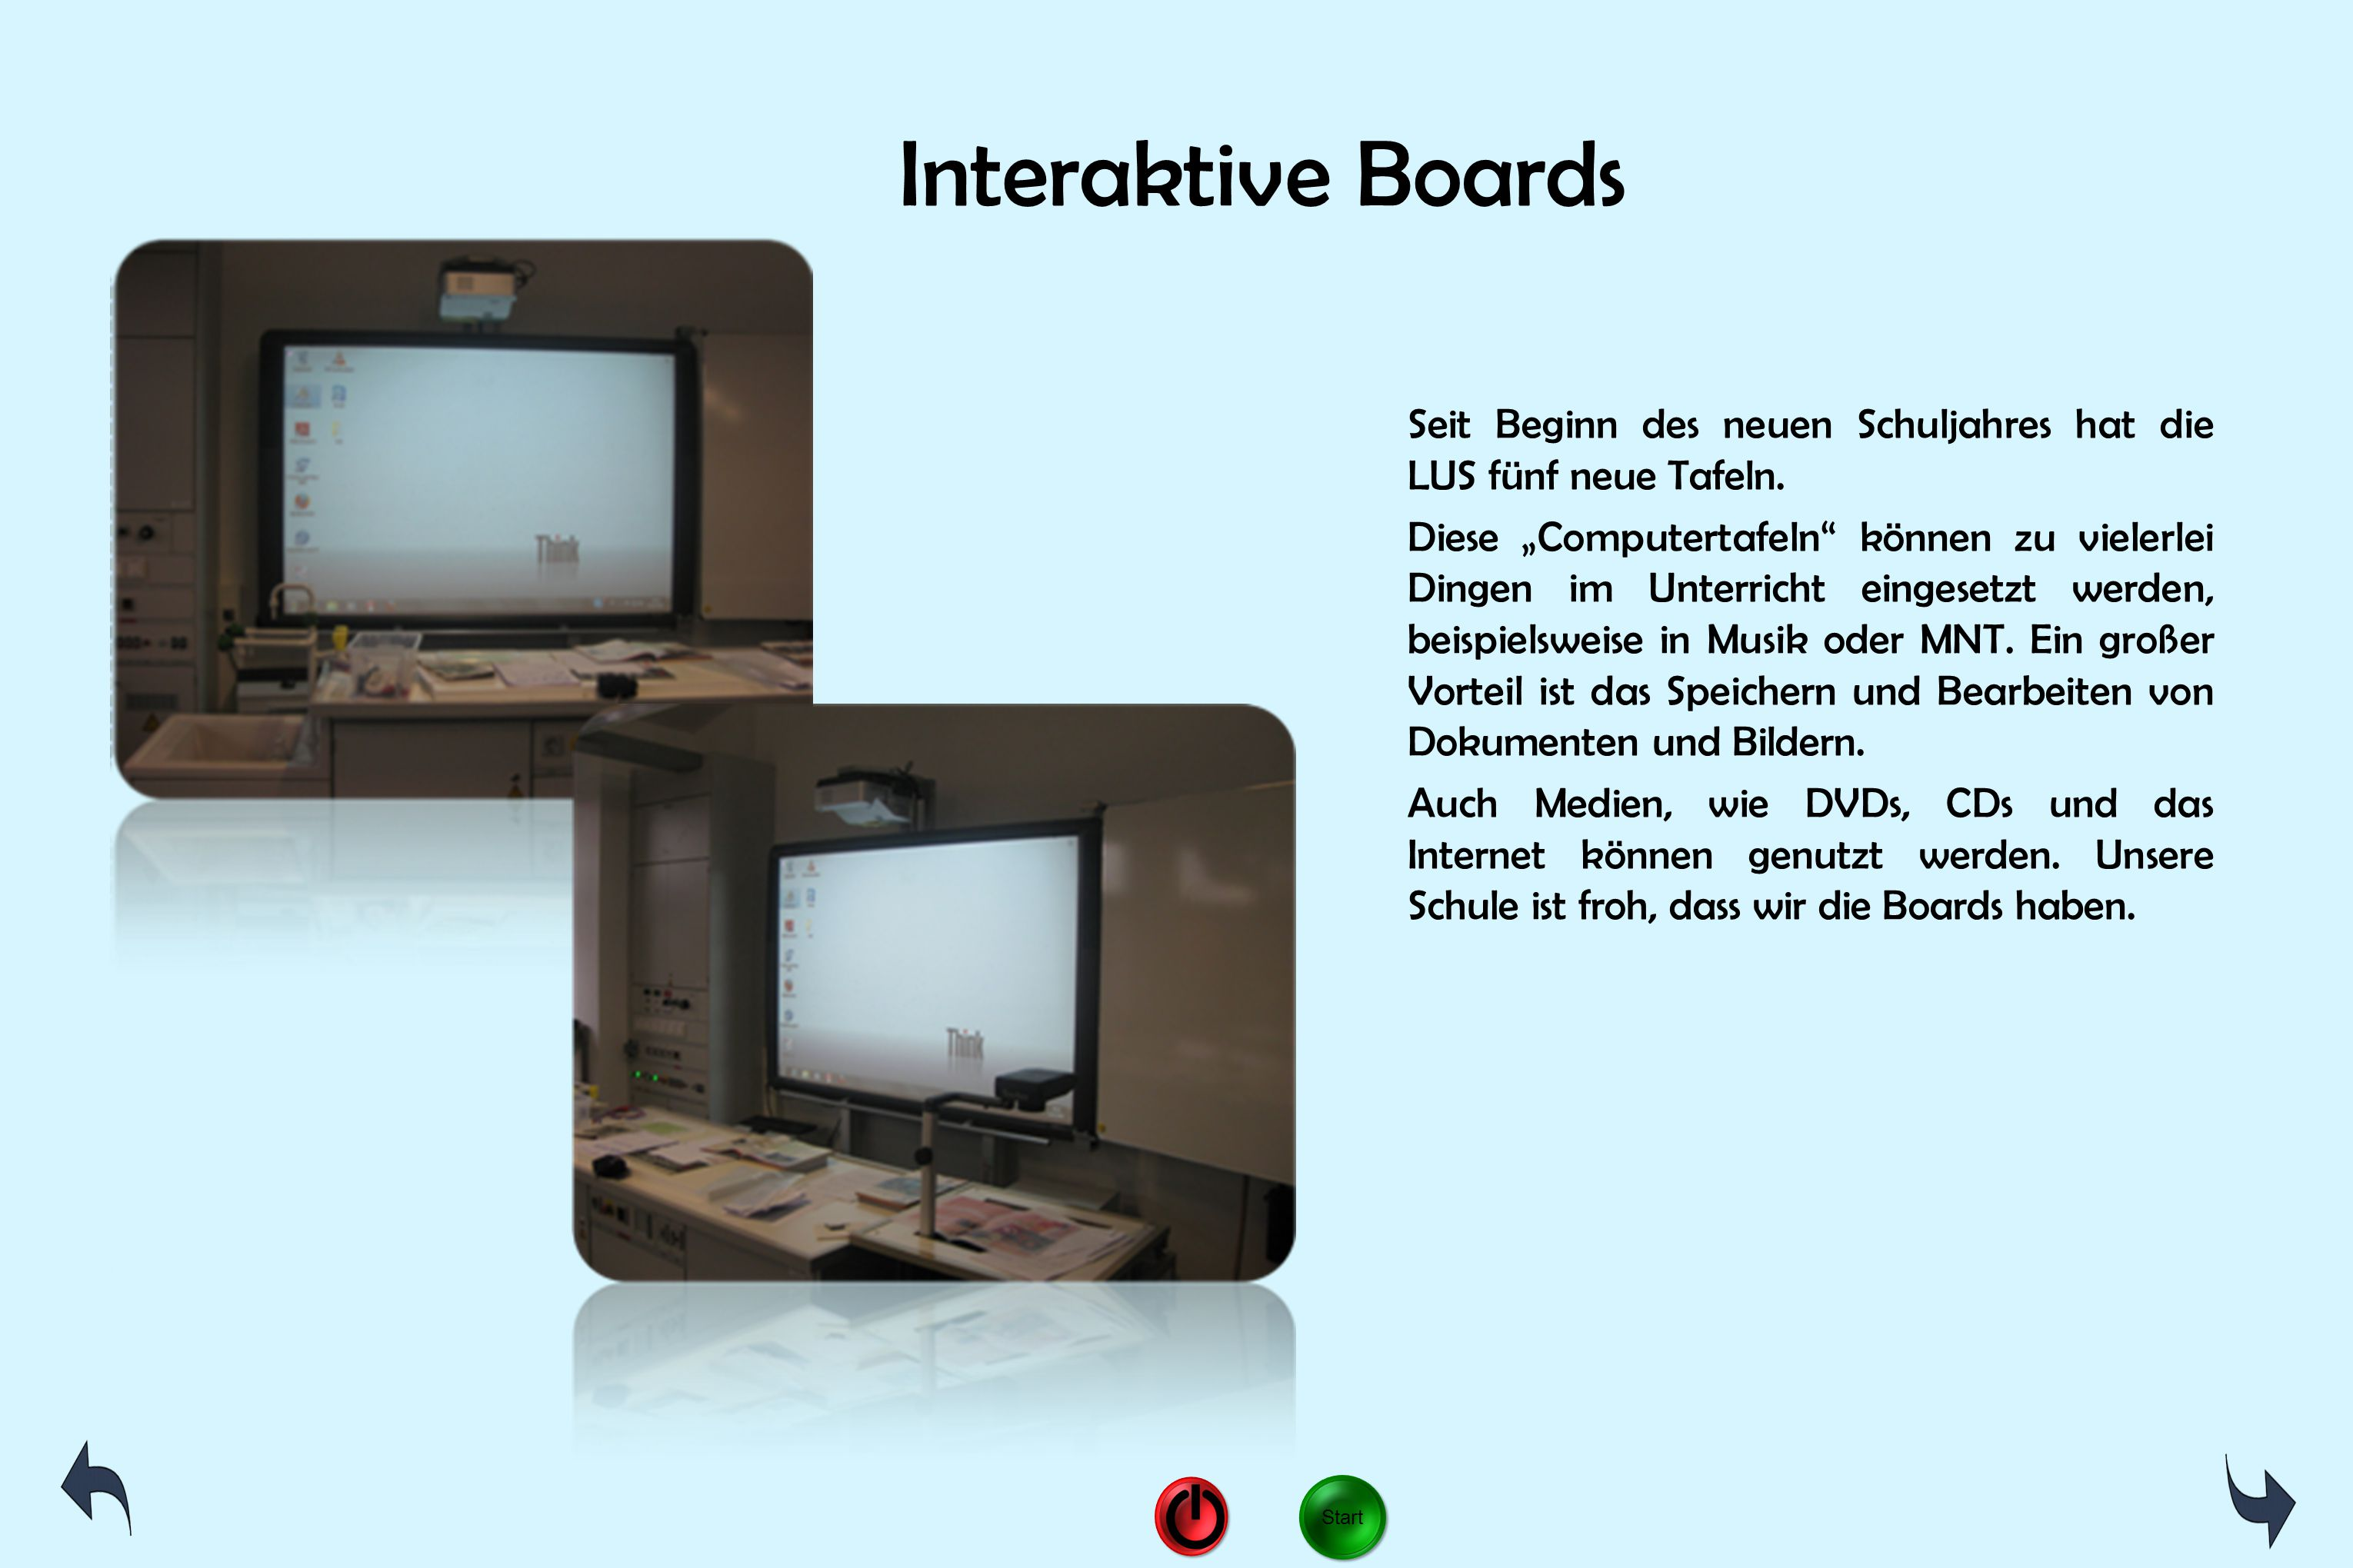 Interaktive Boards